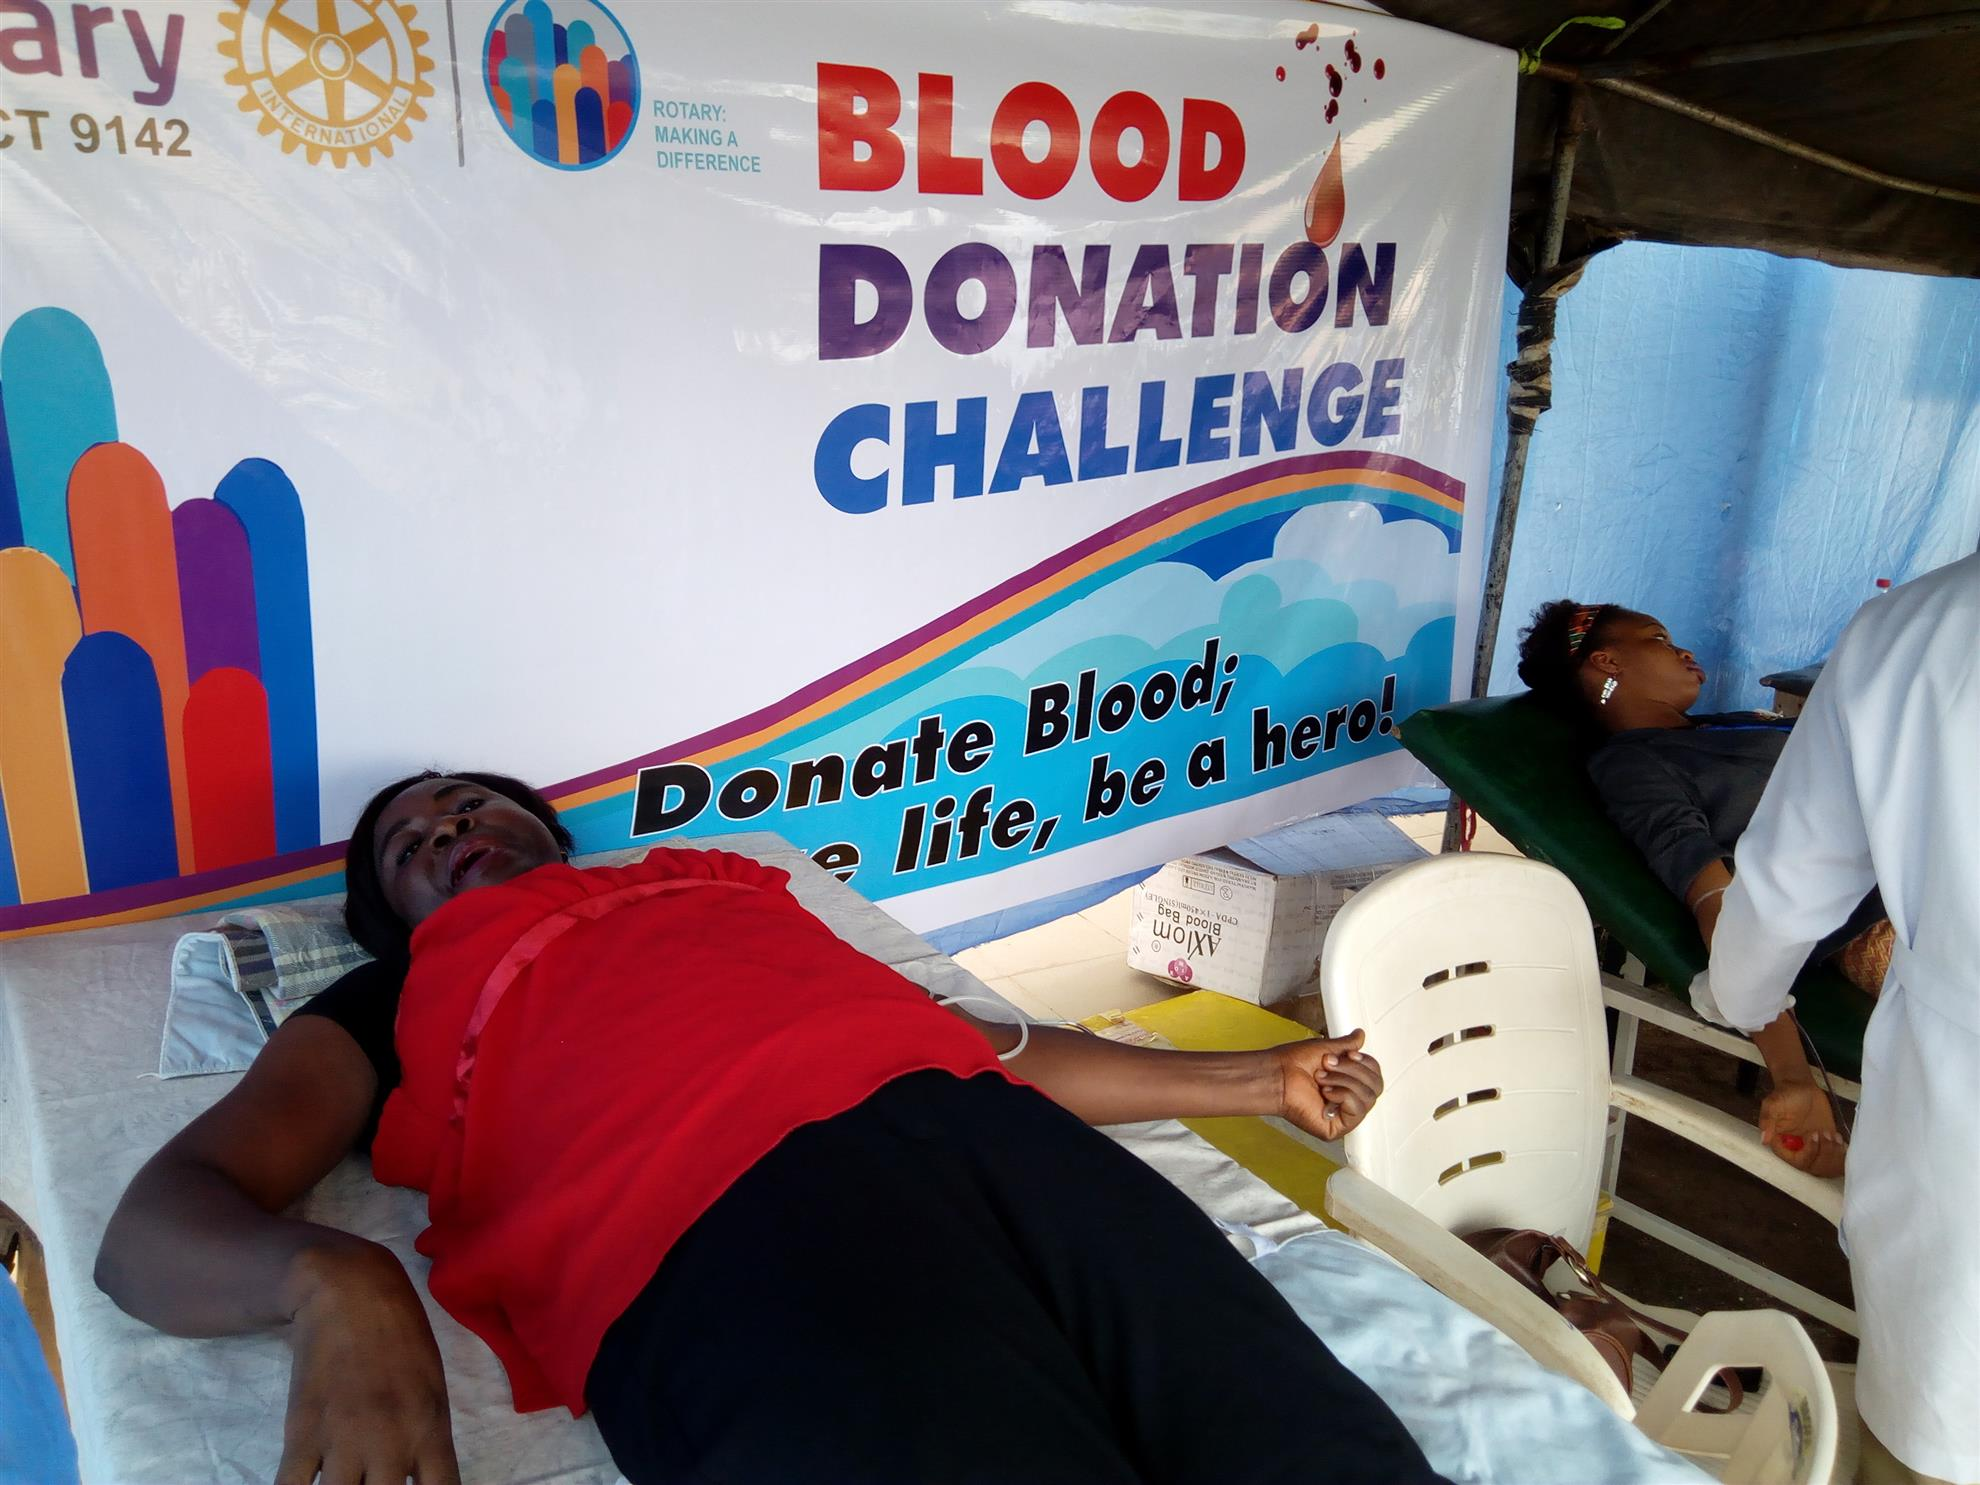 Stories global network for blood donation a rotarian action group district chair on blood donation challenge rid9142nigeria nvjuhfo Image collections